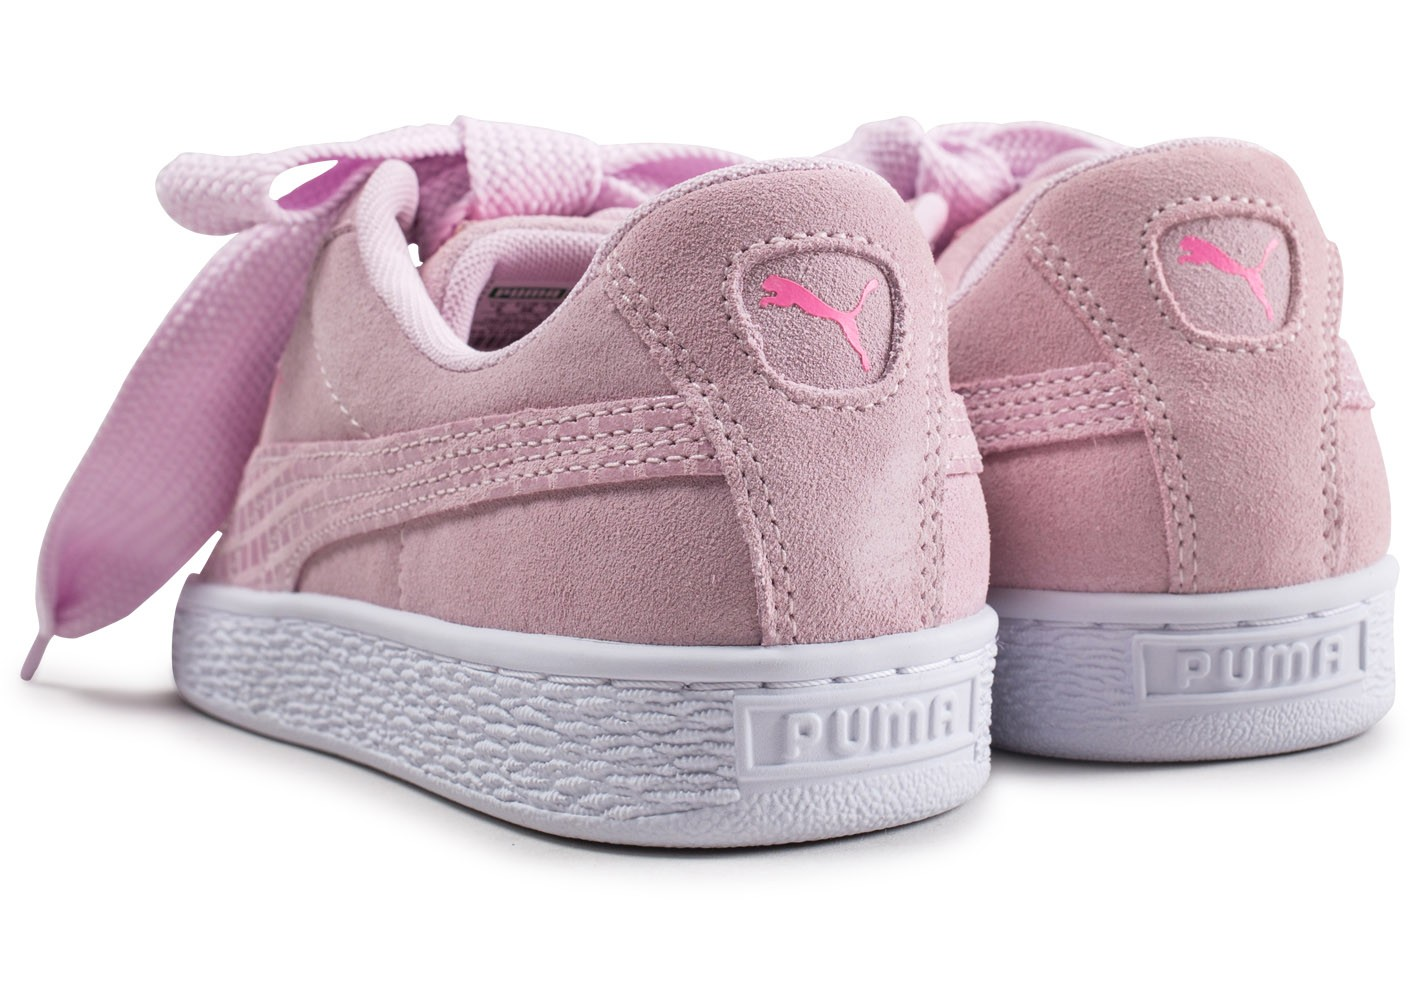 Puma Chaussures Wgq6ixc Noir Friday Heart Suede Rose Uprising Femme Pw8tIqBUw